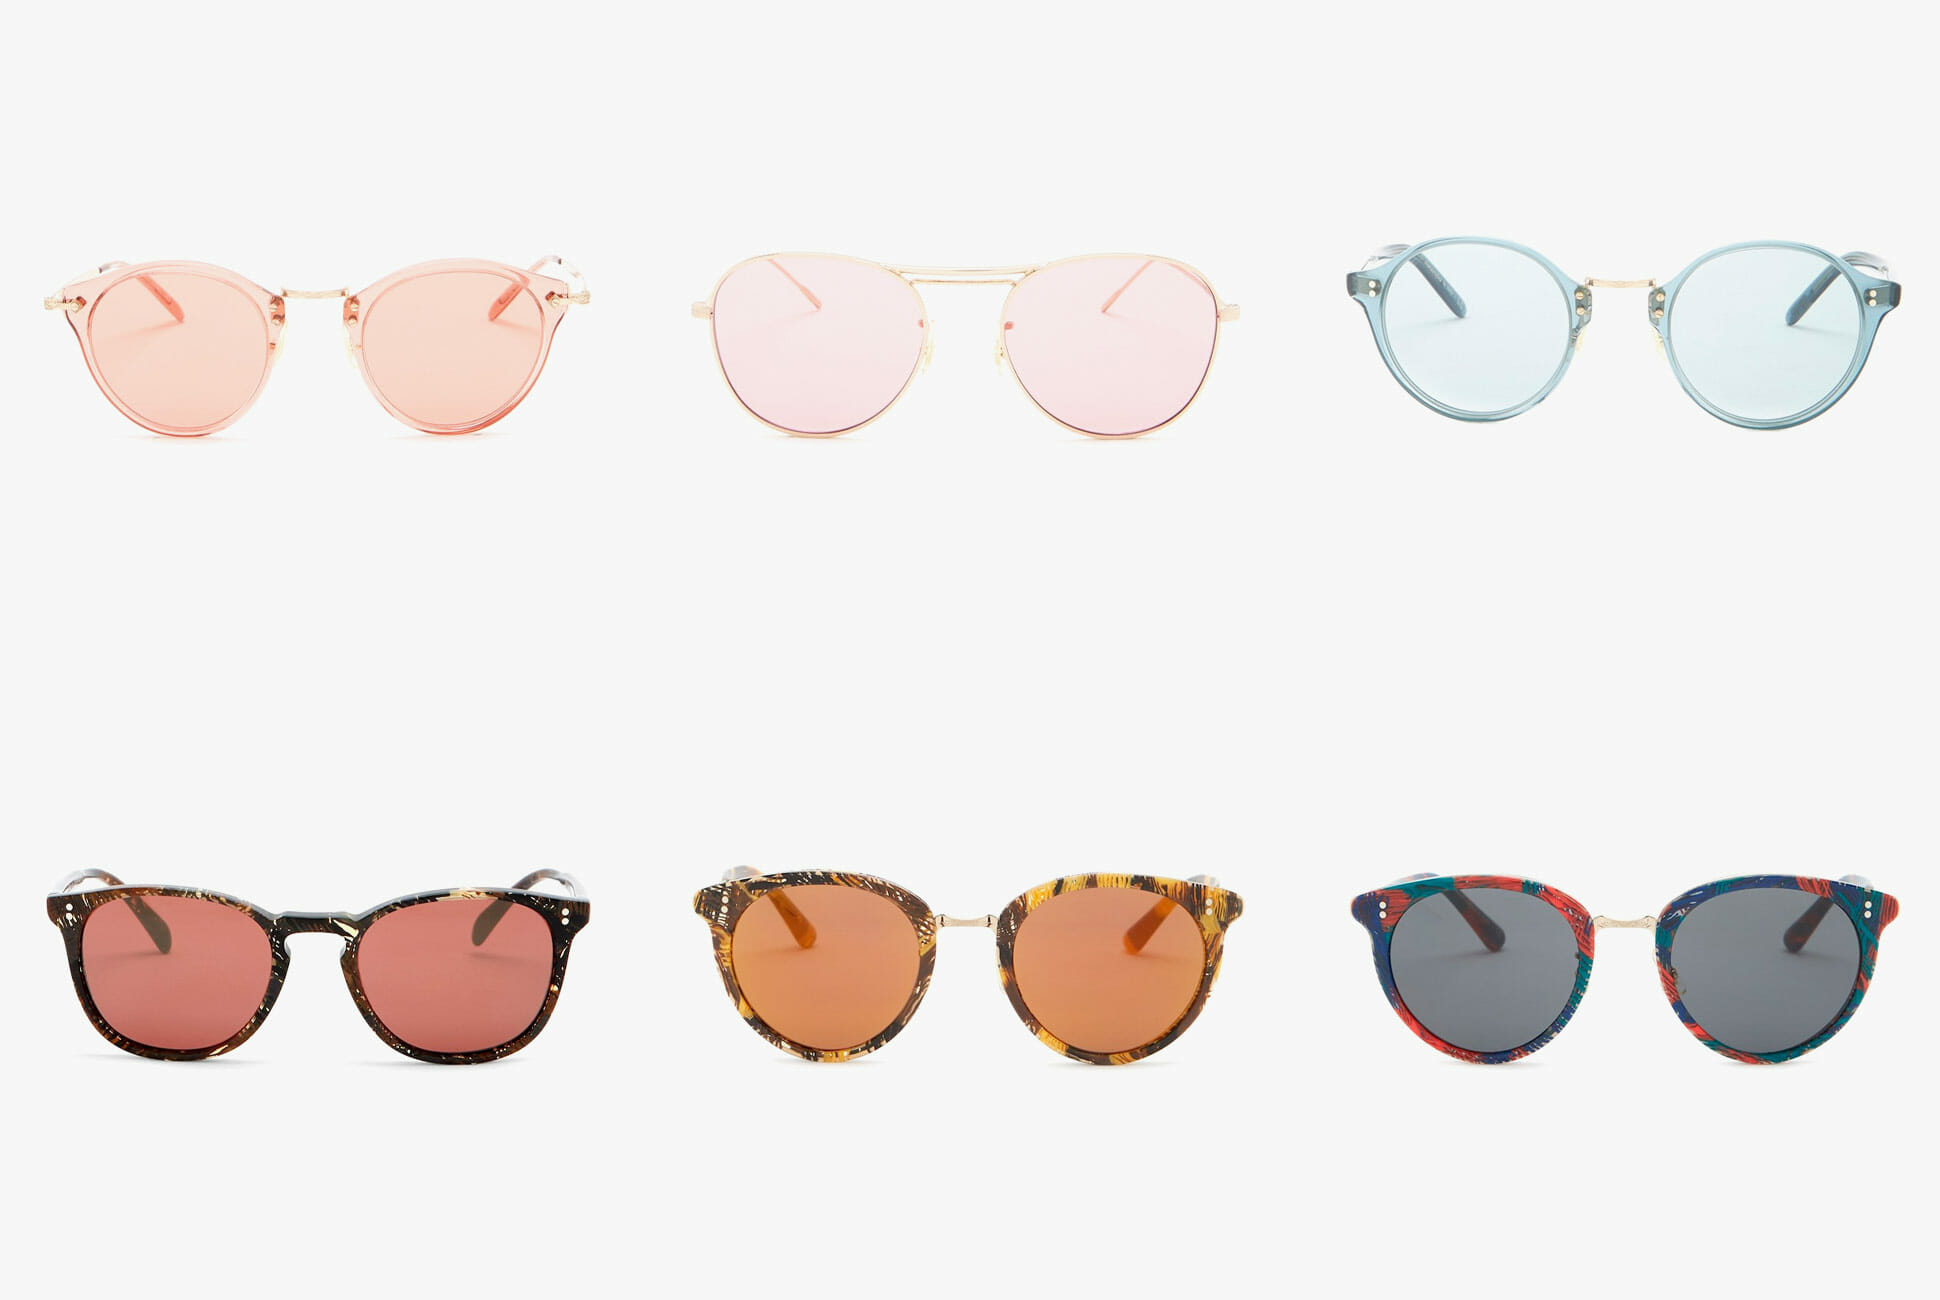 Oliver peoples clipart black and white stock These Oliver Peoples Sunglasses Are Up to 77% Off • Gear Patrol black and white stock